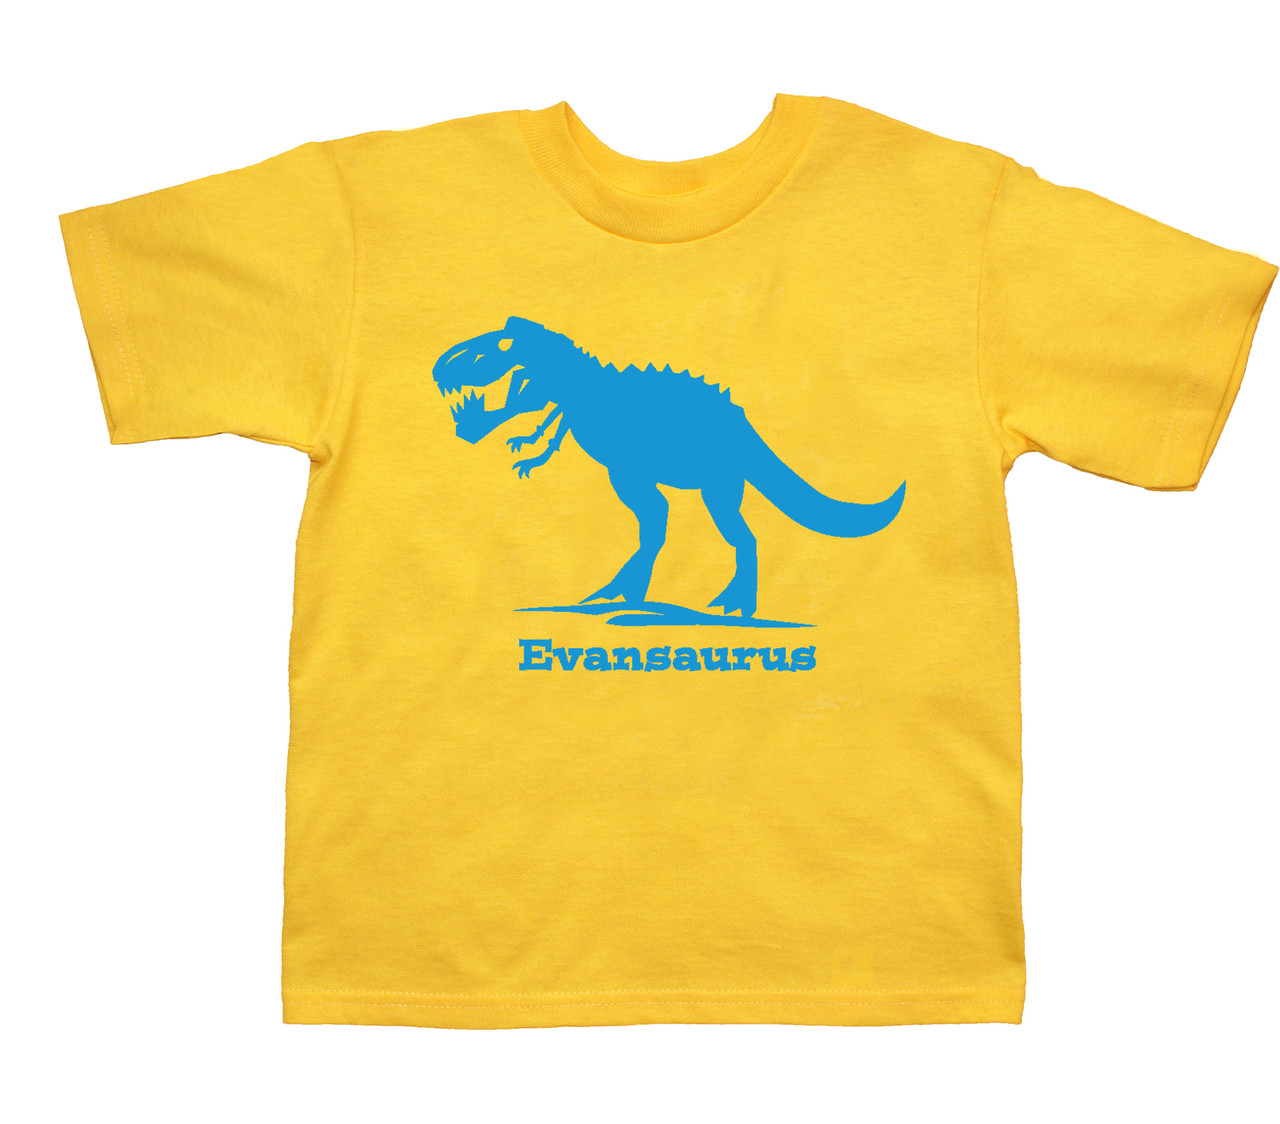 Trex dinosaur custom tshirt printed on yellow tshirt